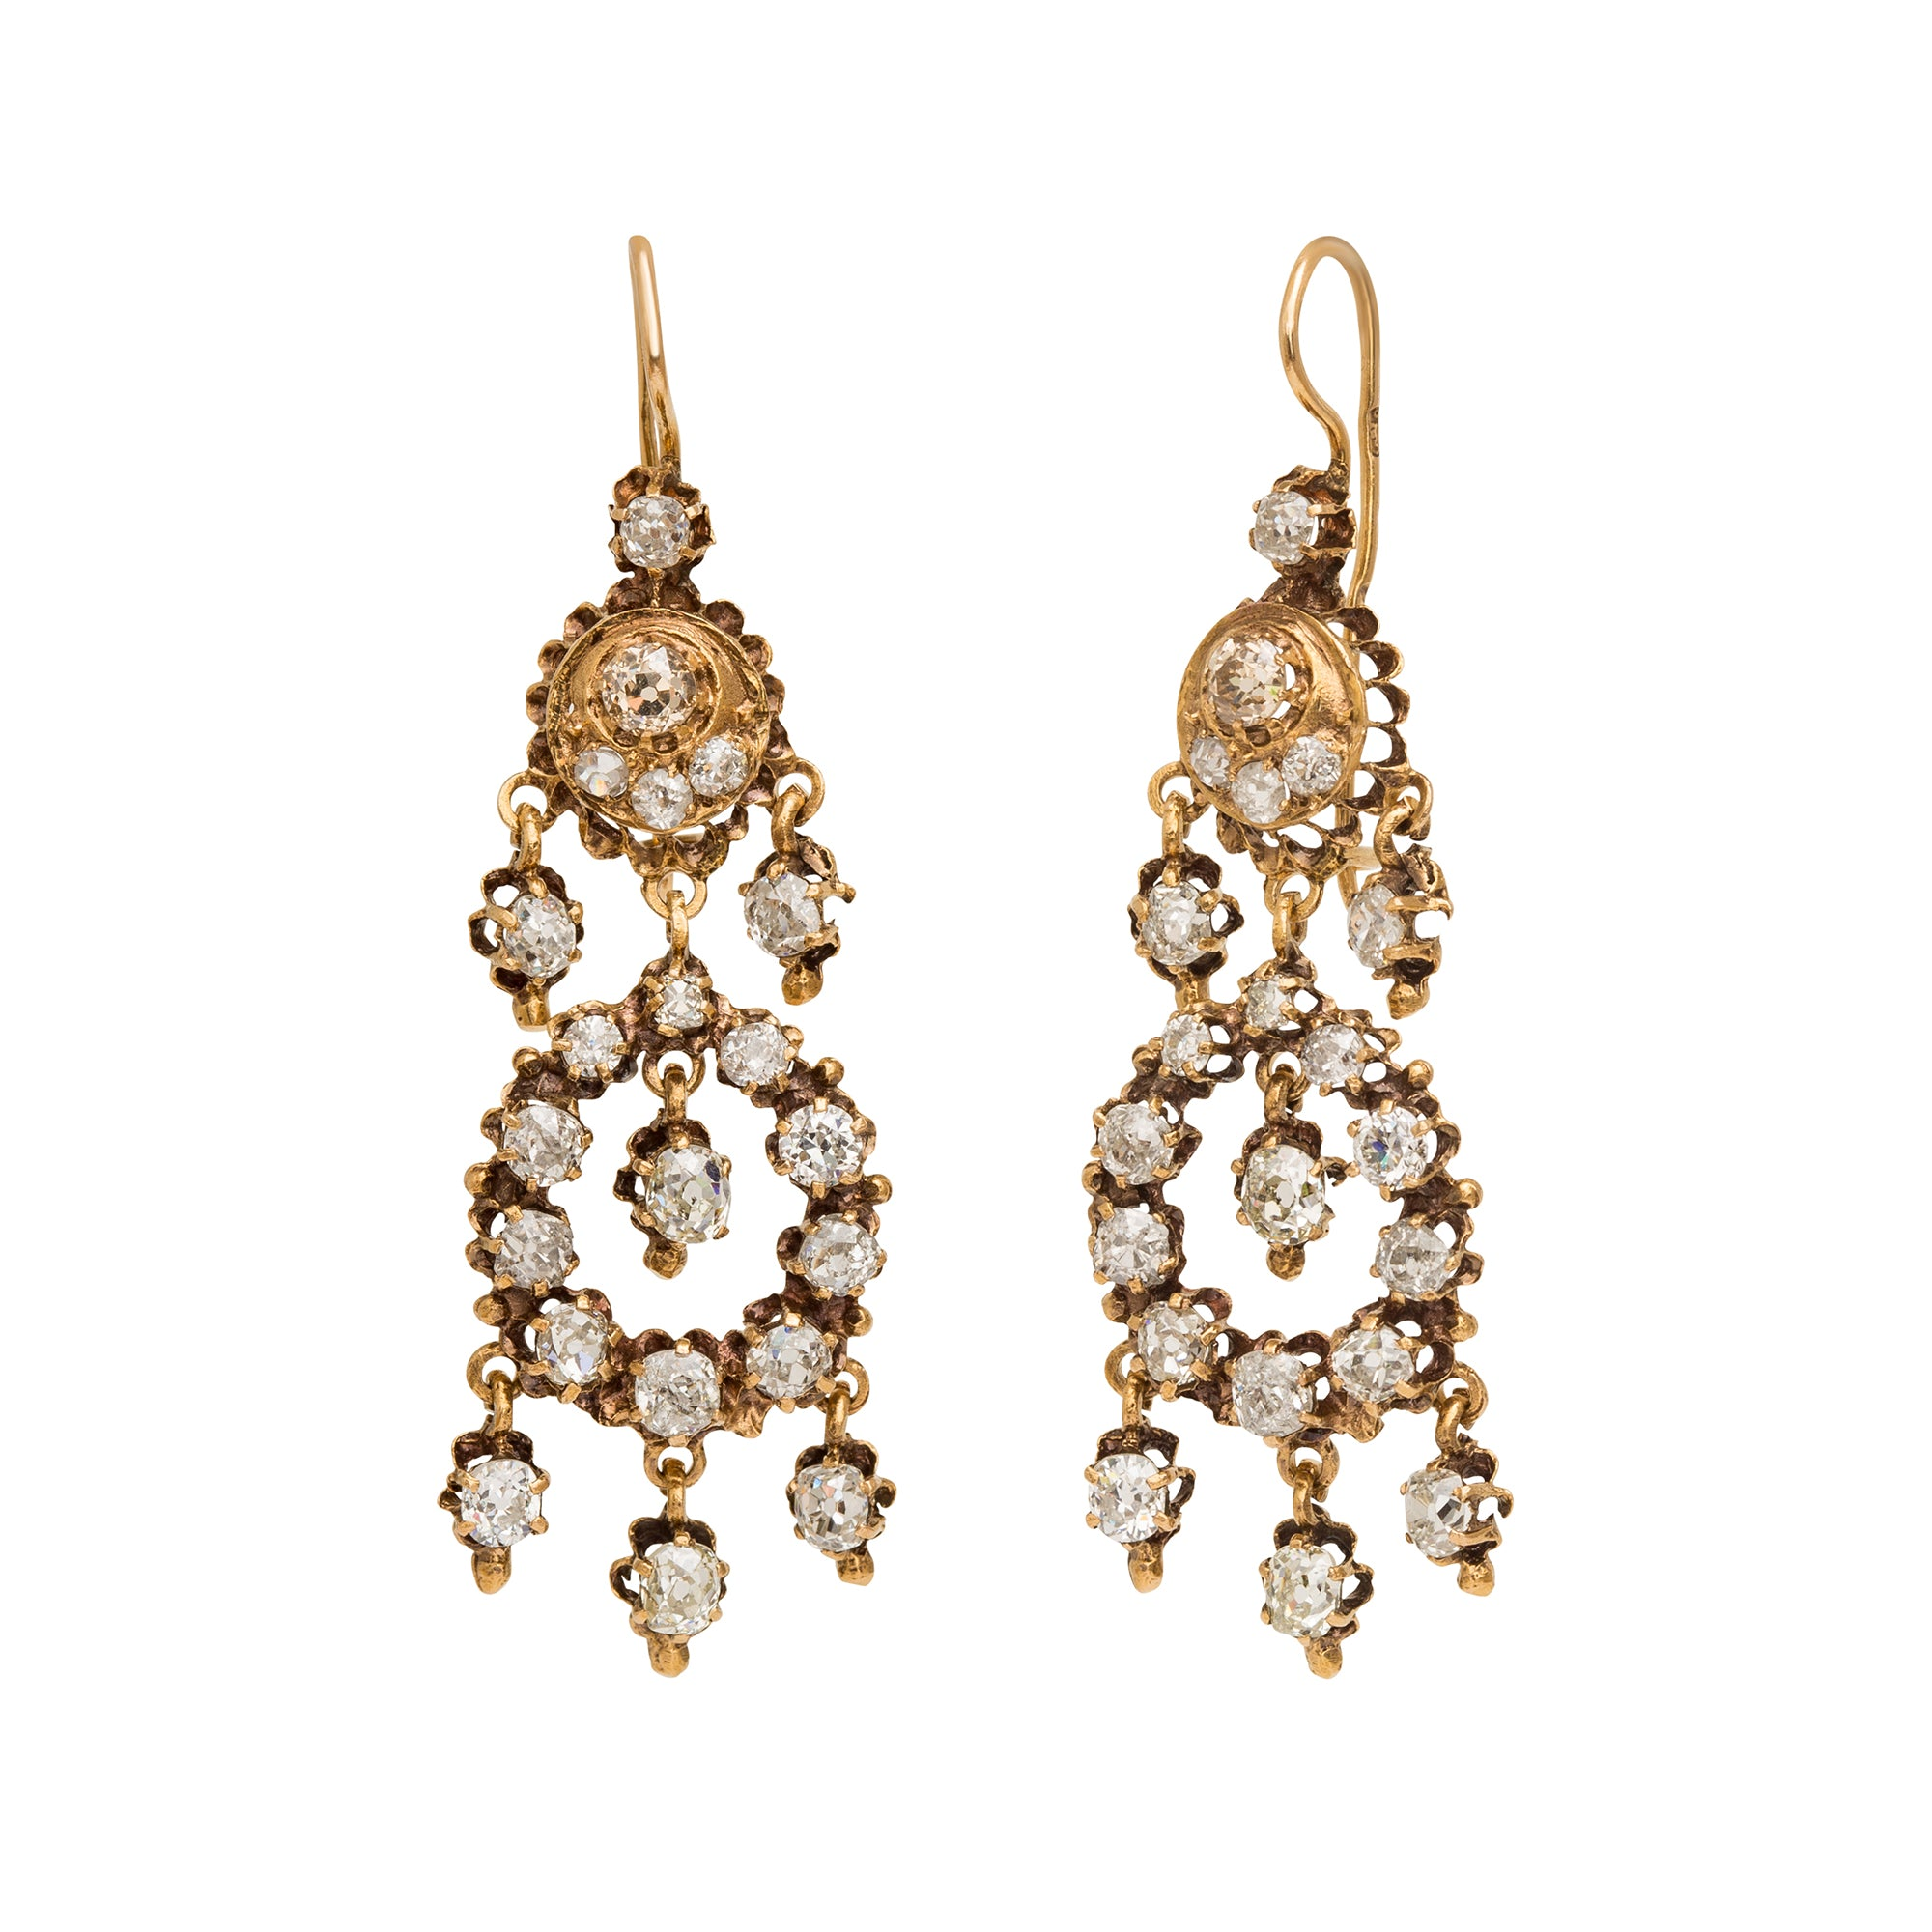 Hanging Diamond Earrings from Broken English Jewelry